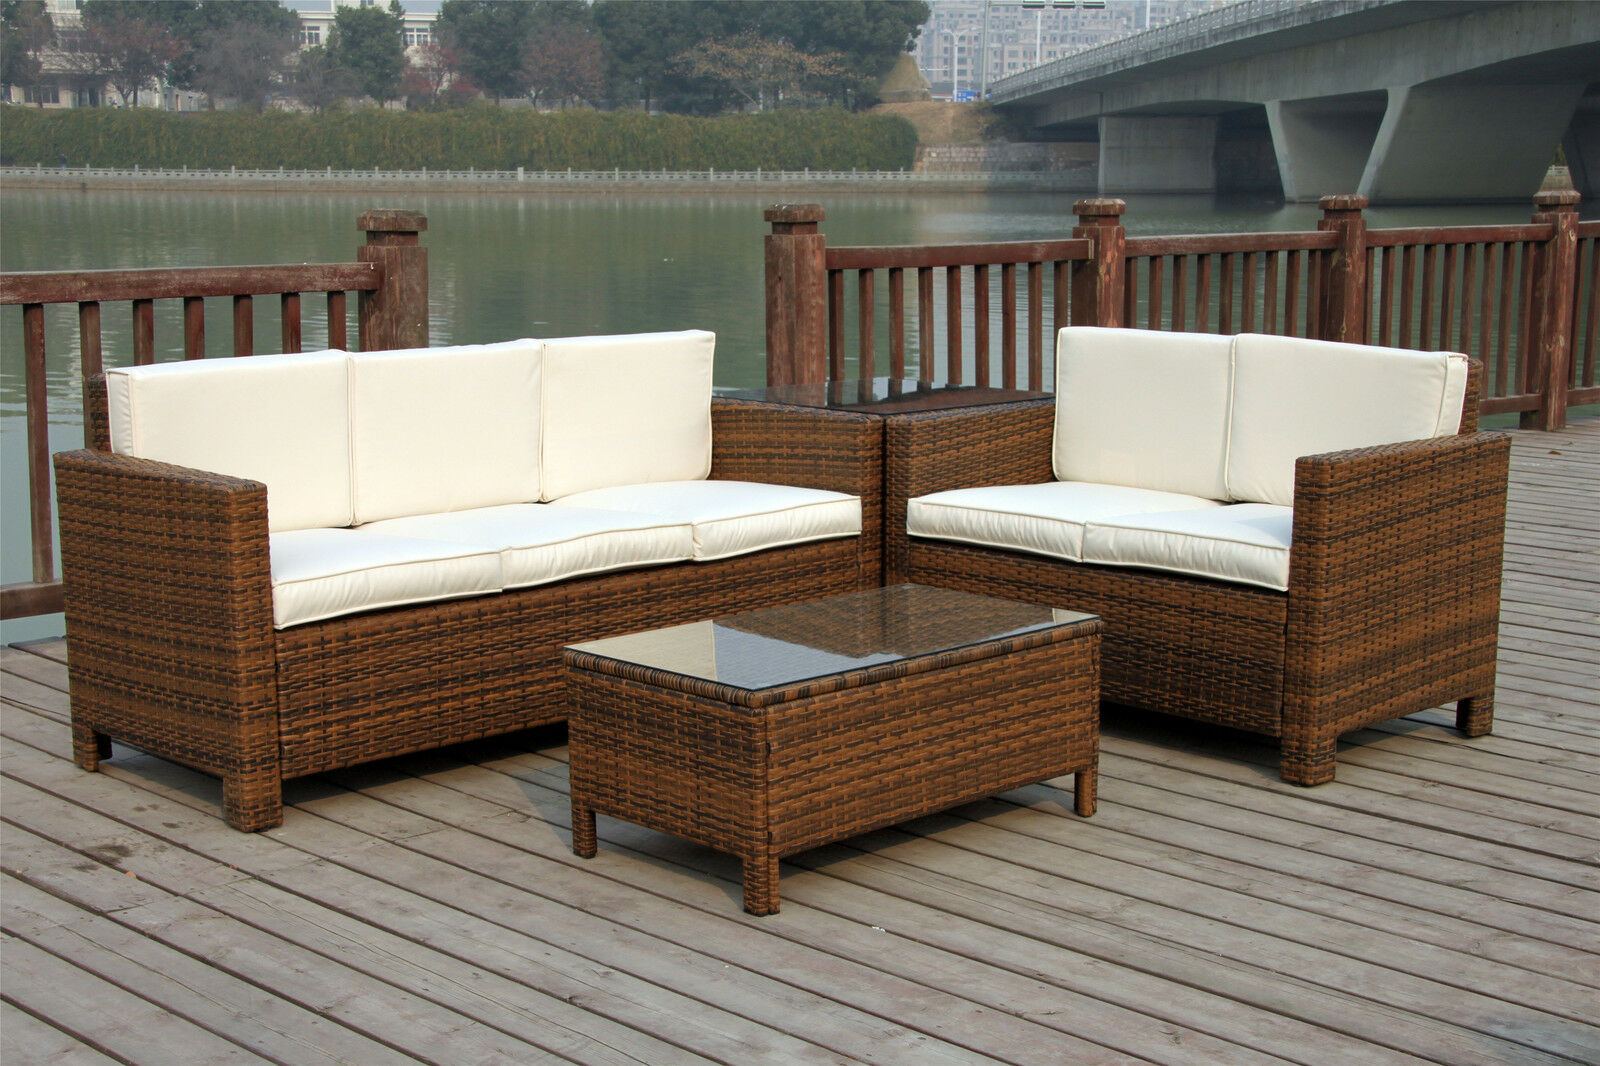 Rattan garden outdoor wicker patio furniture conservatory for Outdoor wicker furniture